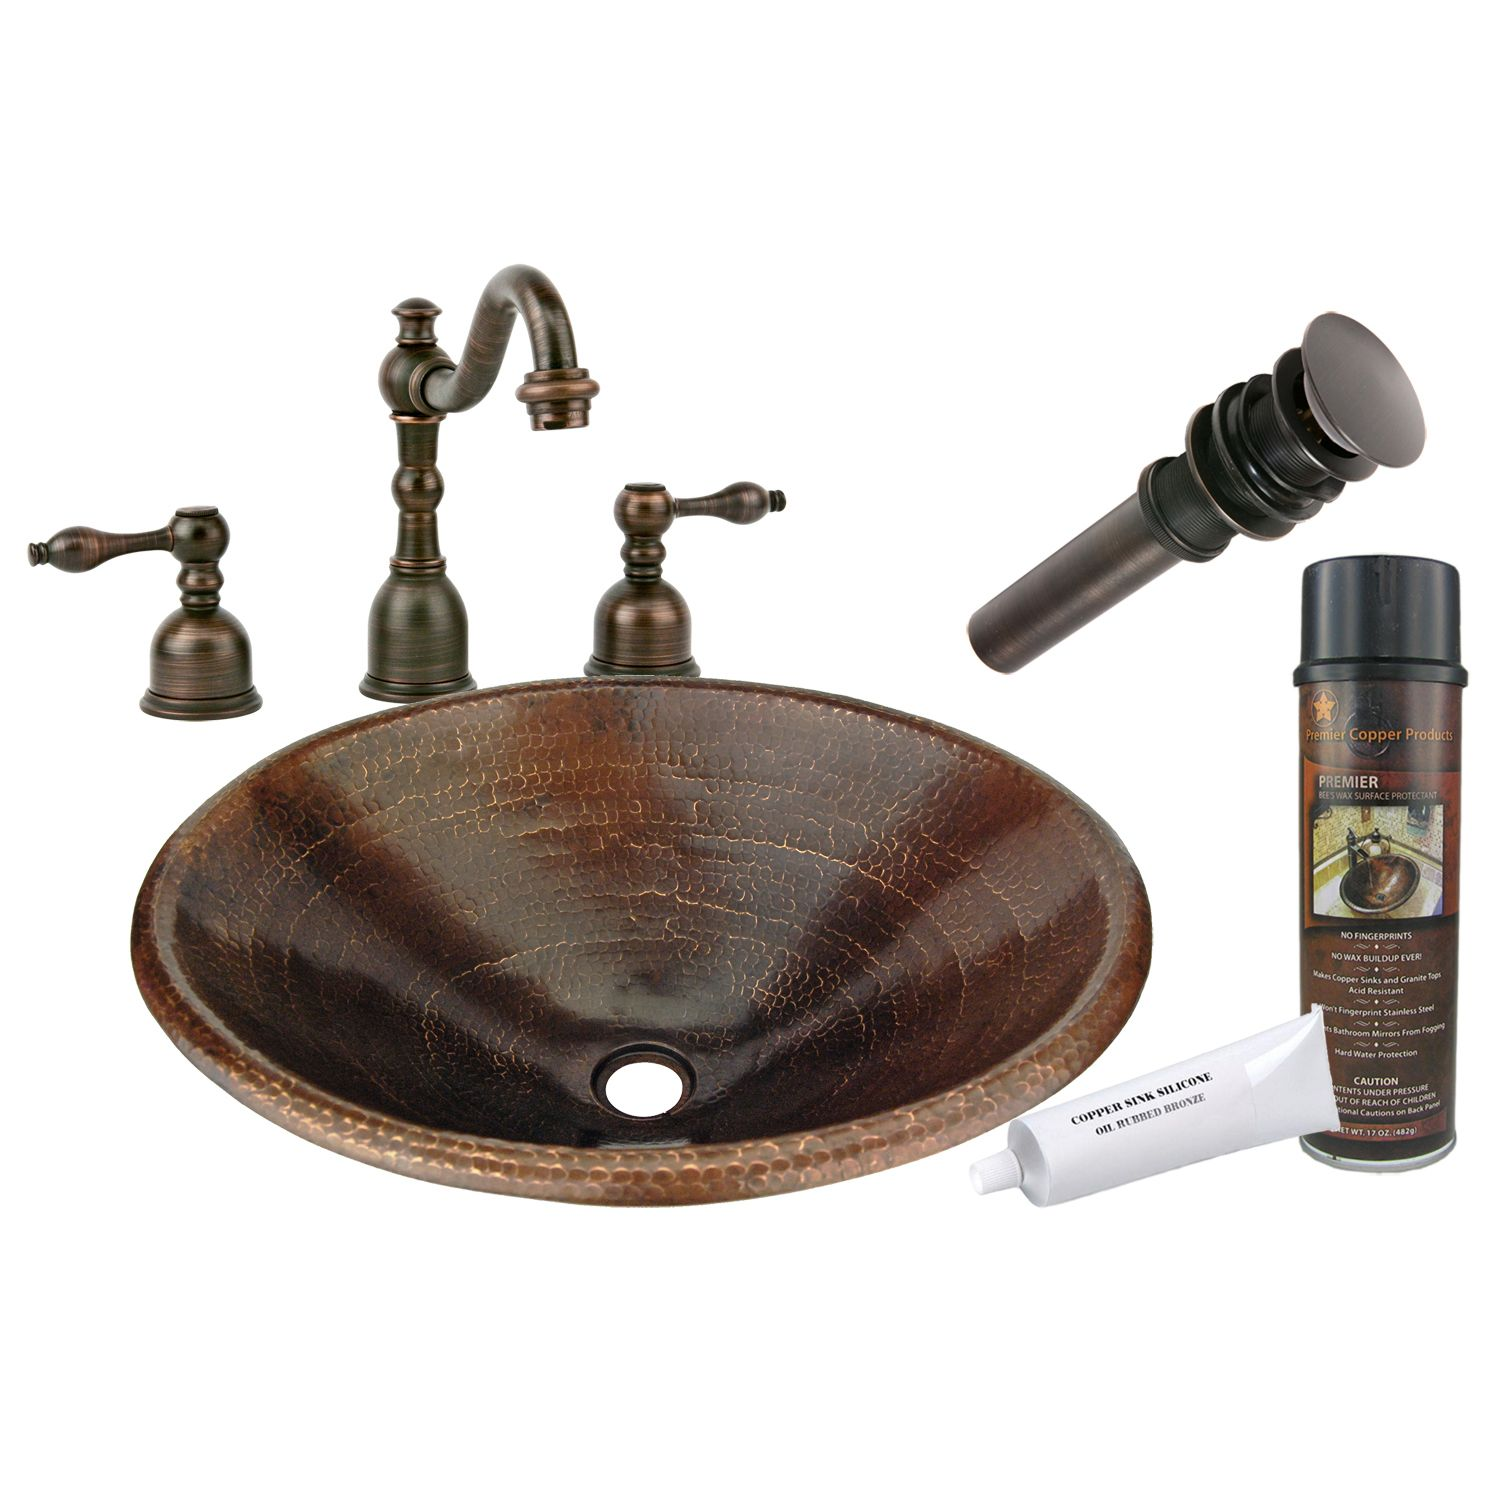 Photo of Premier Copper Products – Master Bath Oval Self Rimming Hammered Copper Bathroom Sink, Faucet and Accessories Package, Oil Rubbed Bronze